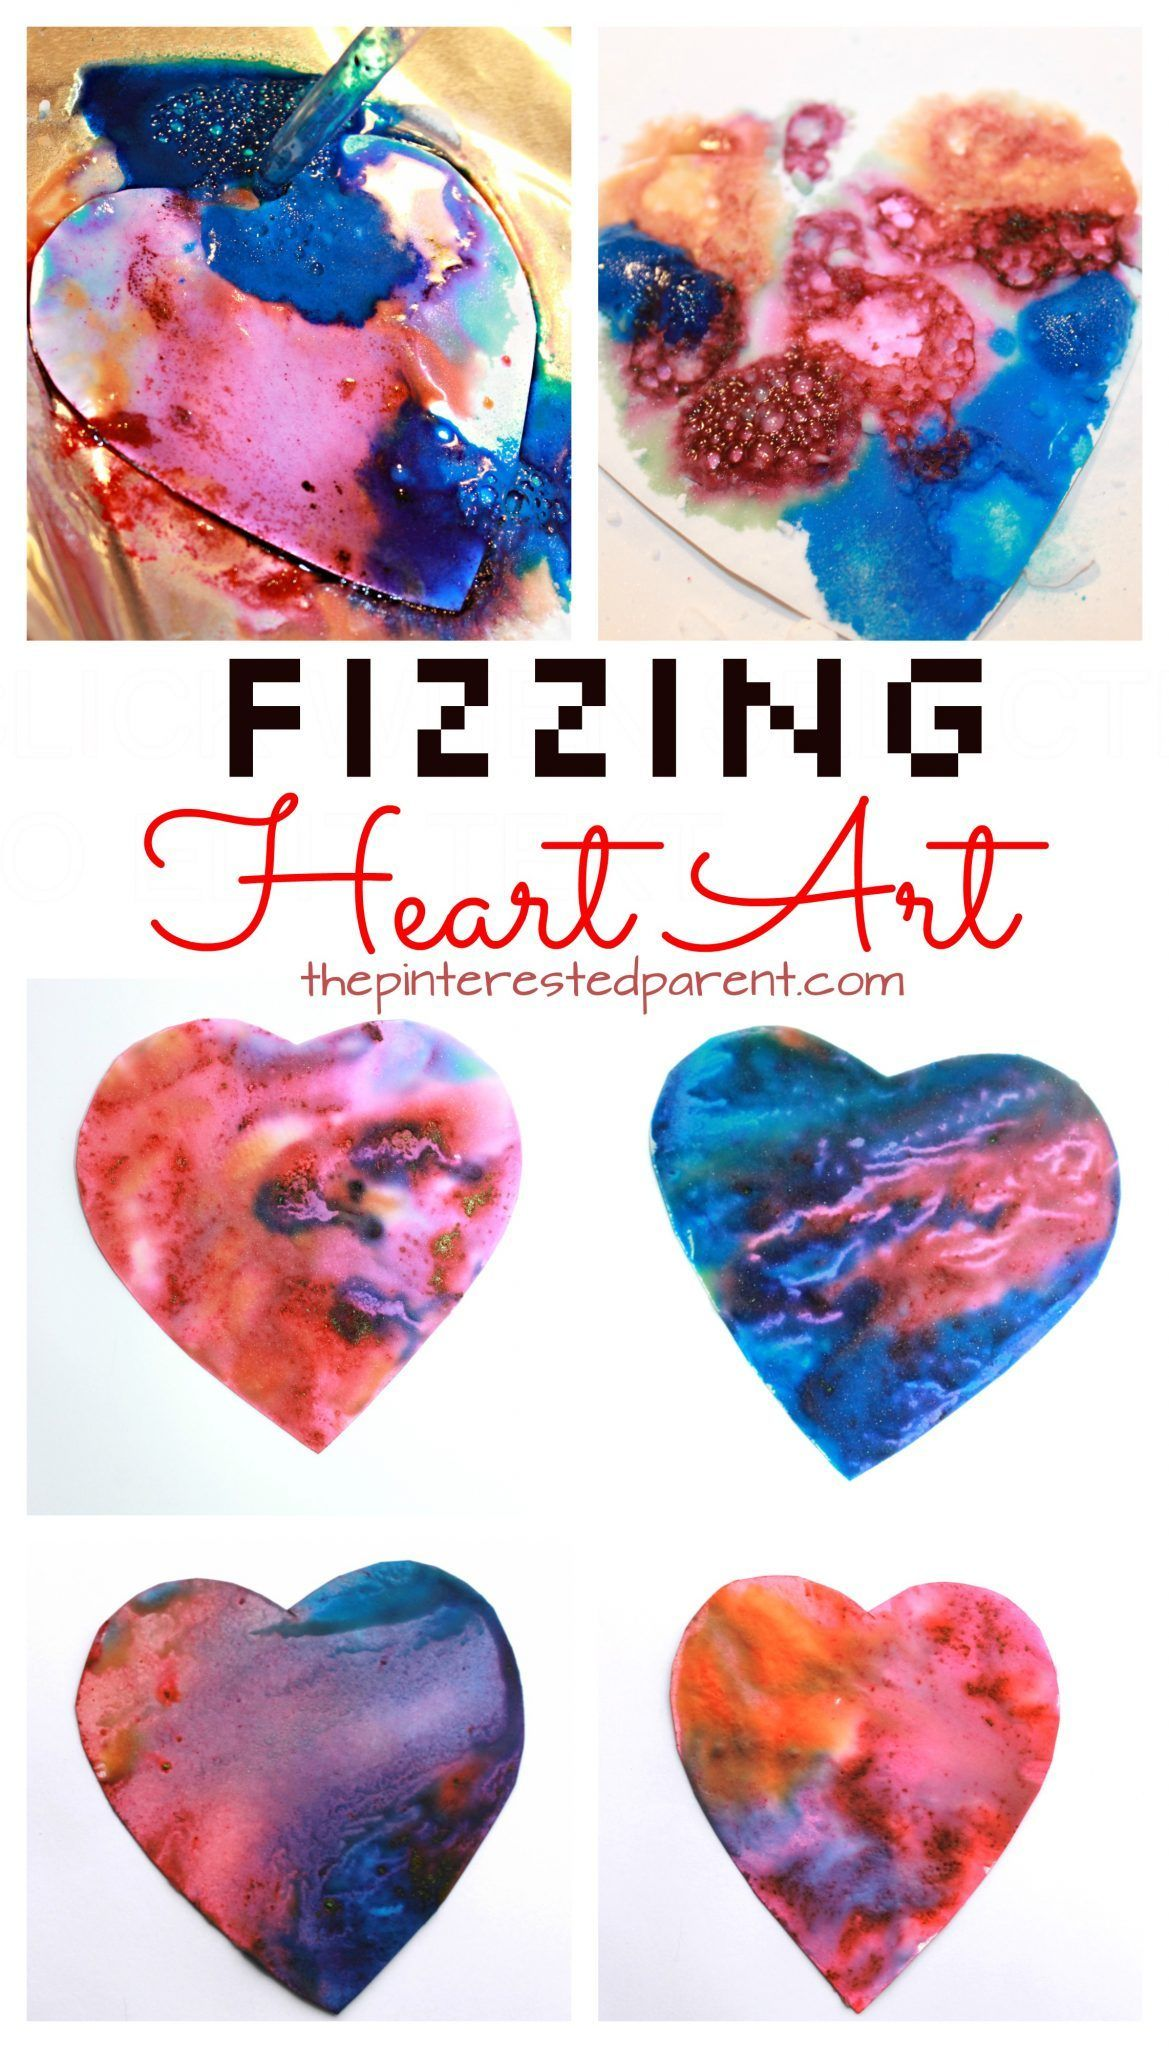 Fizzing baking soda and vinegar heart paint eruptions. Science and art fun  for kids perfect